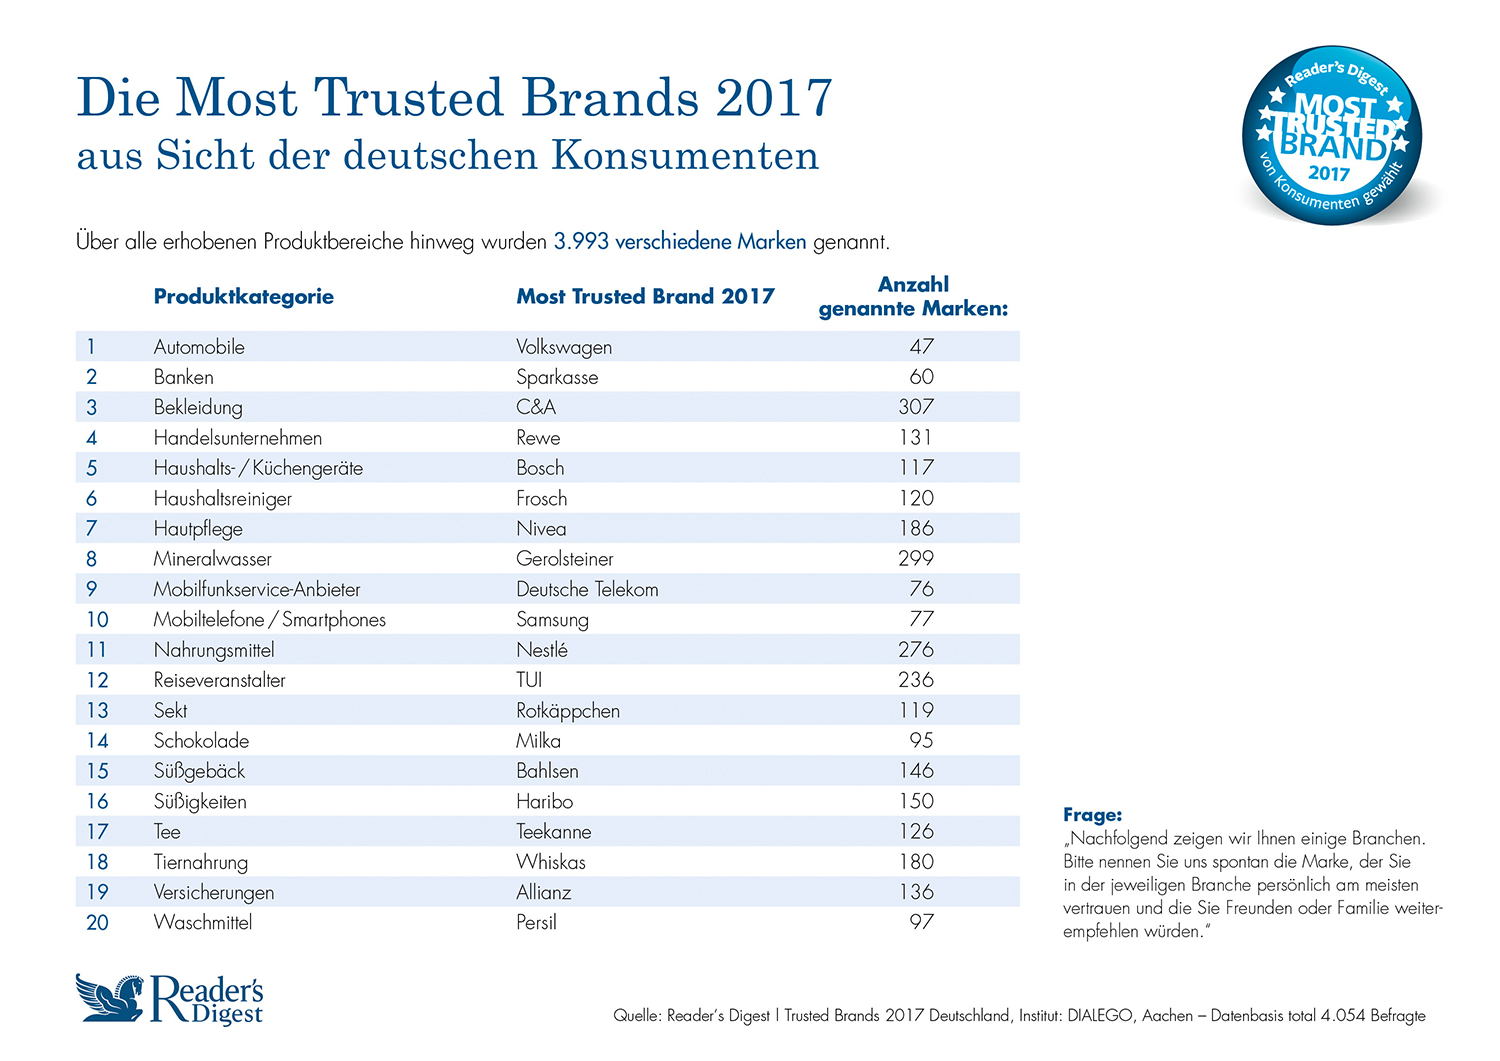 Most Trusted Brands 2017 aus der Sicht der deutschen Konsumenten